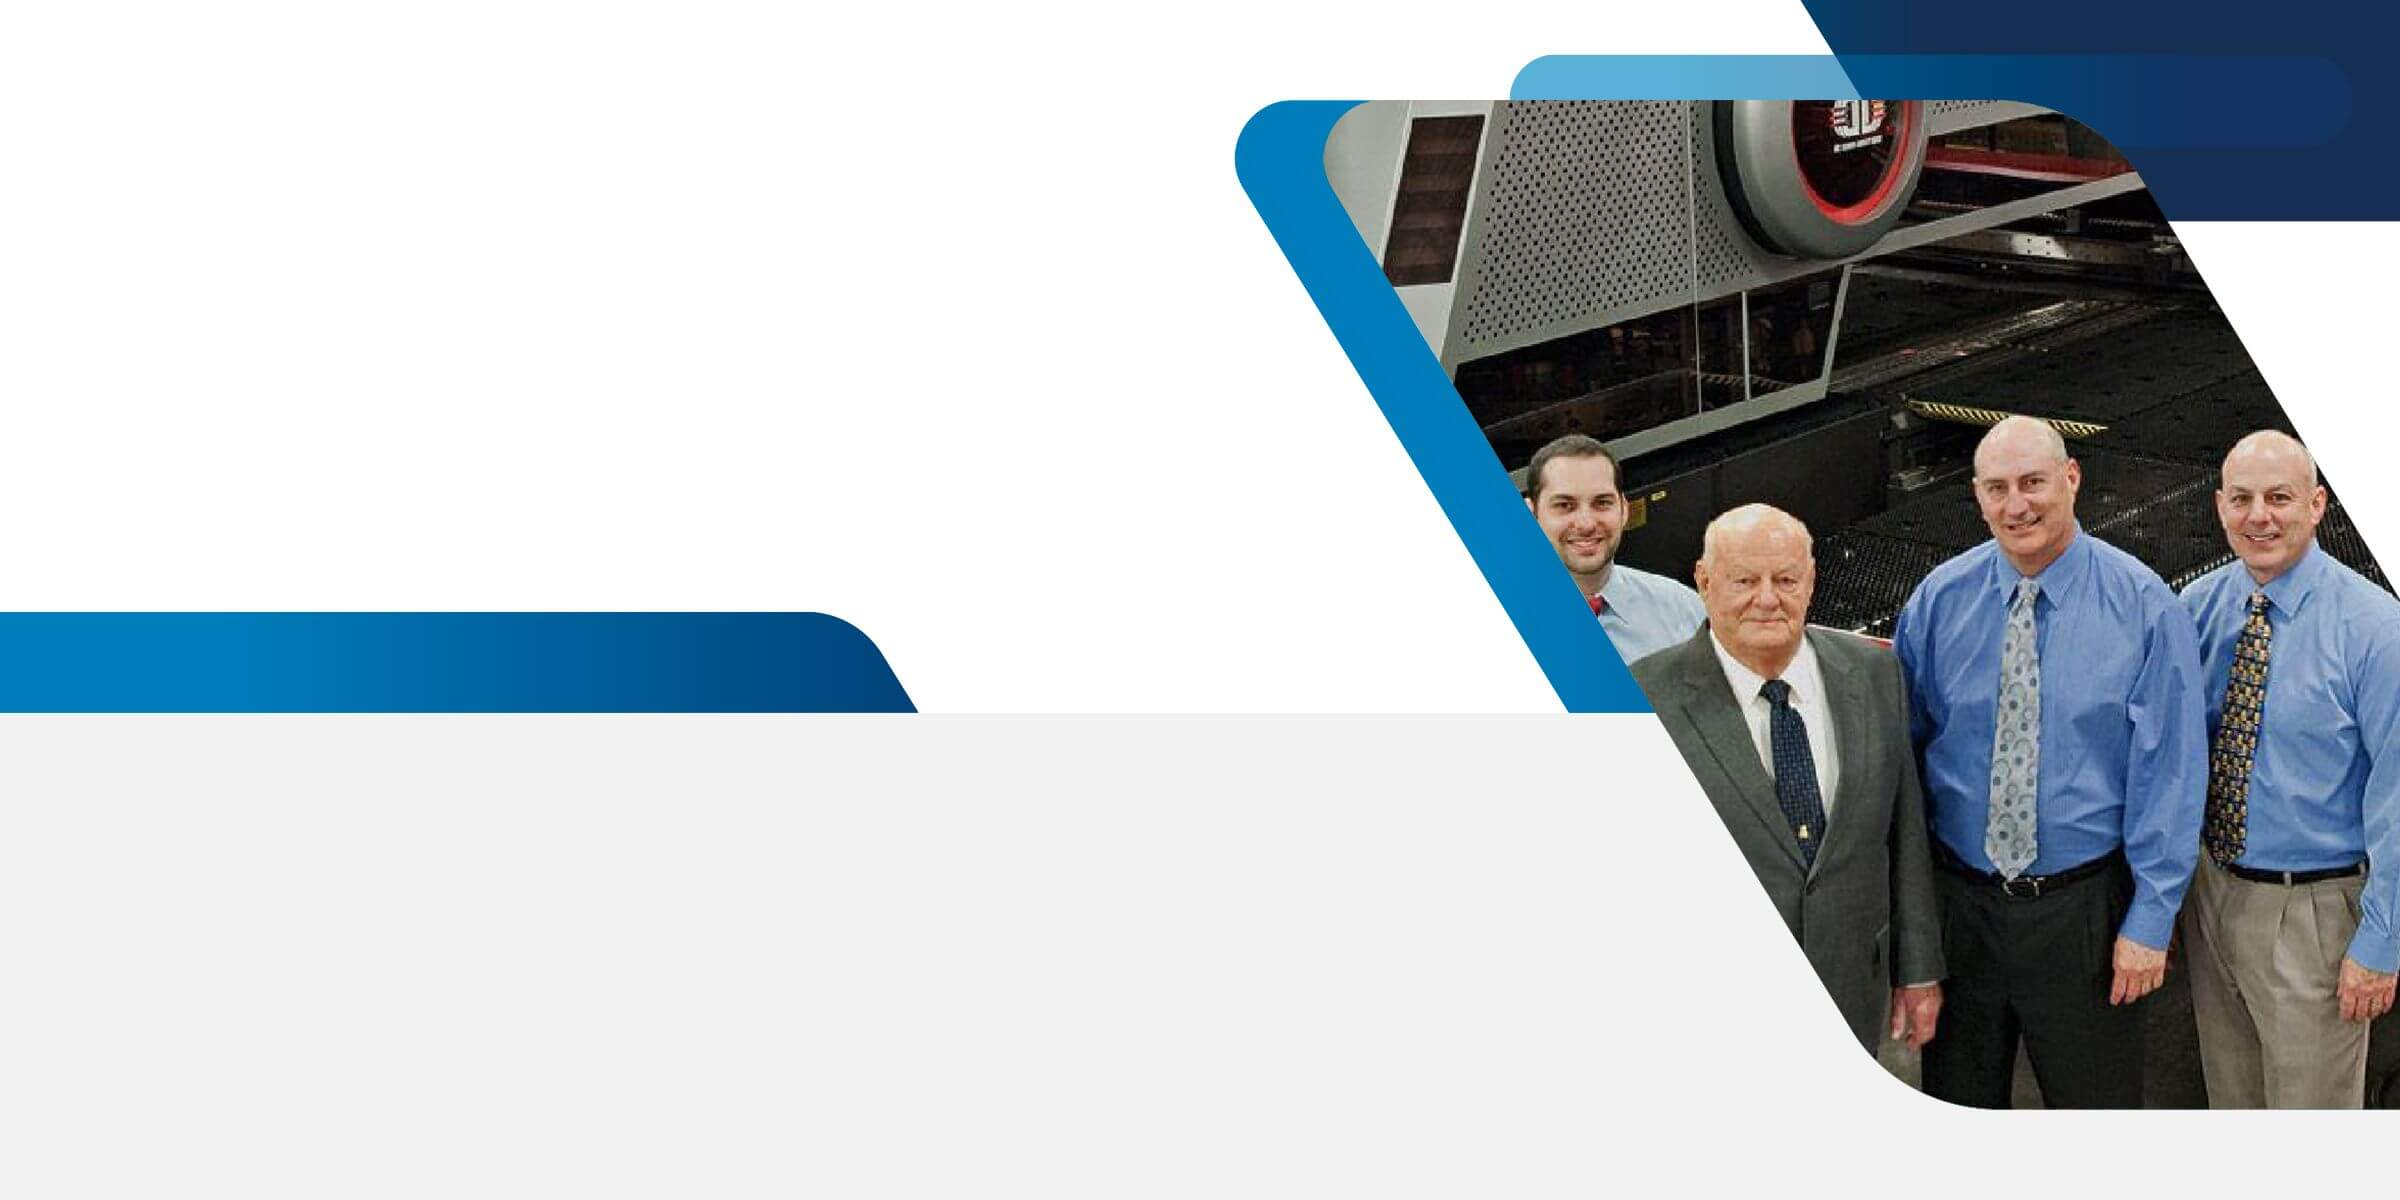 Management Team Banner Image